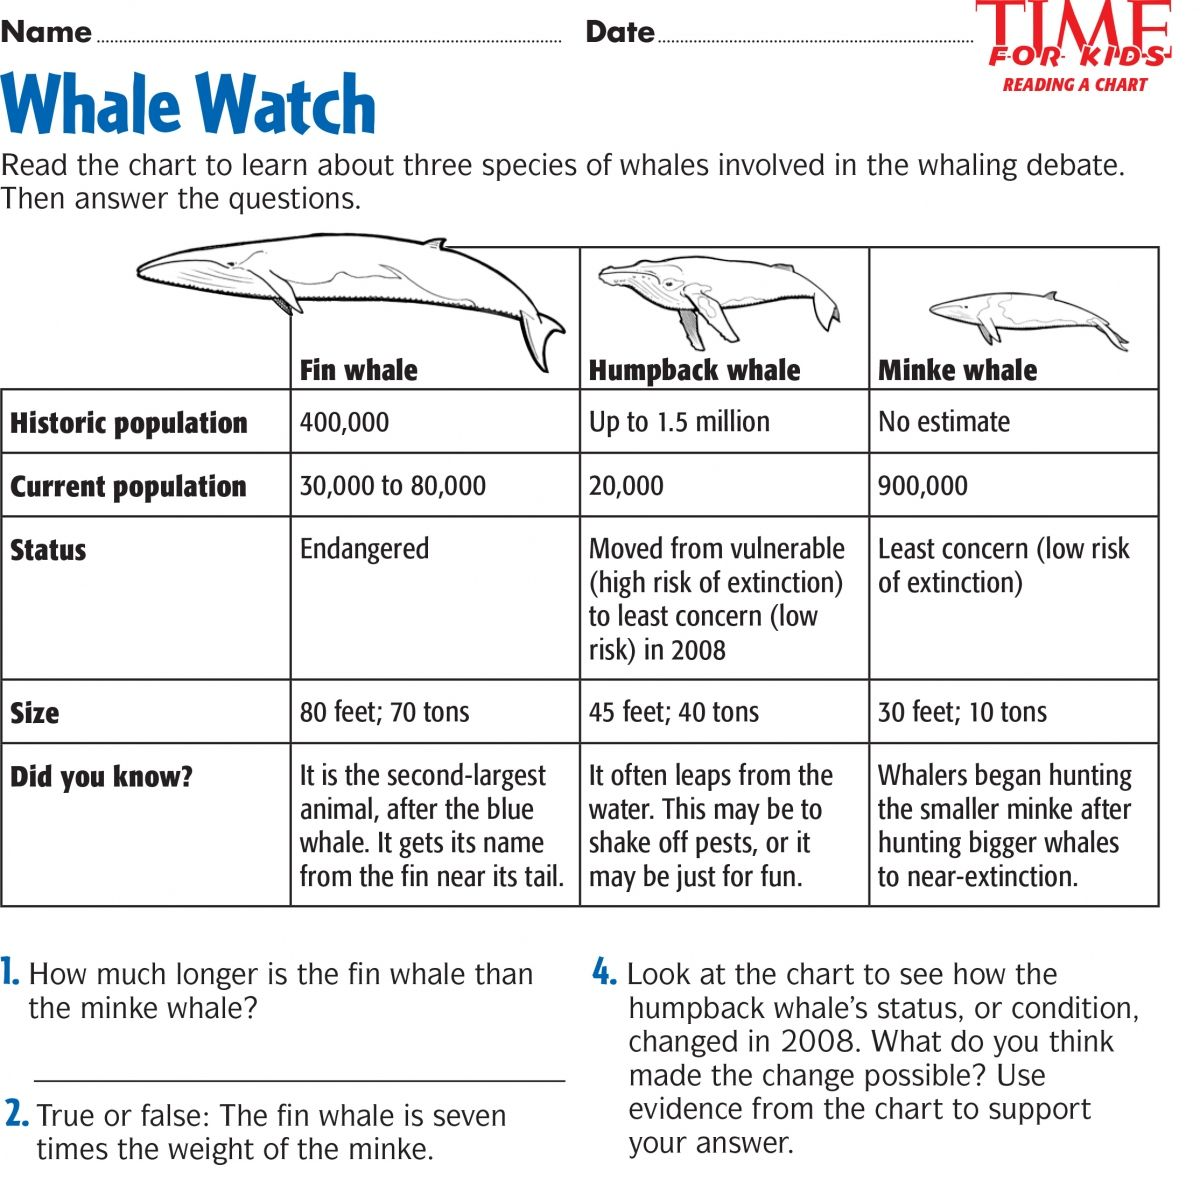 Whale Watch Students Read A Chart About Three Species Of